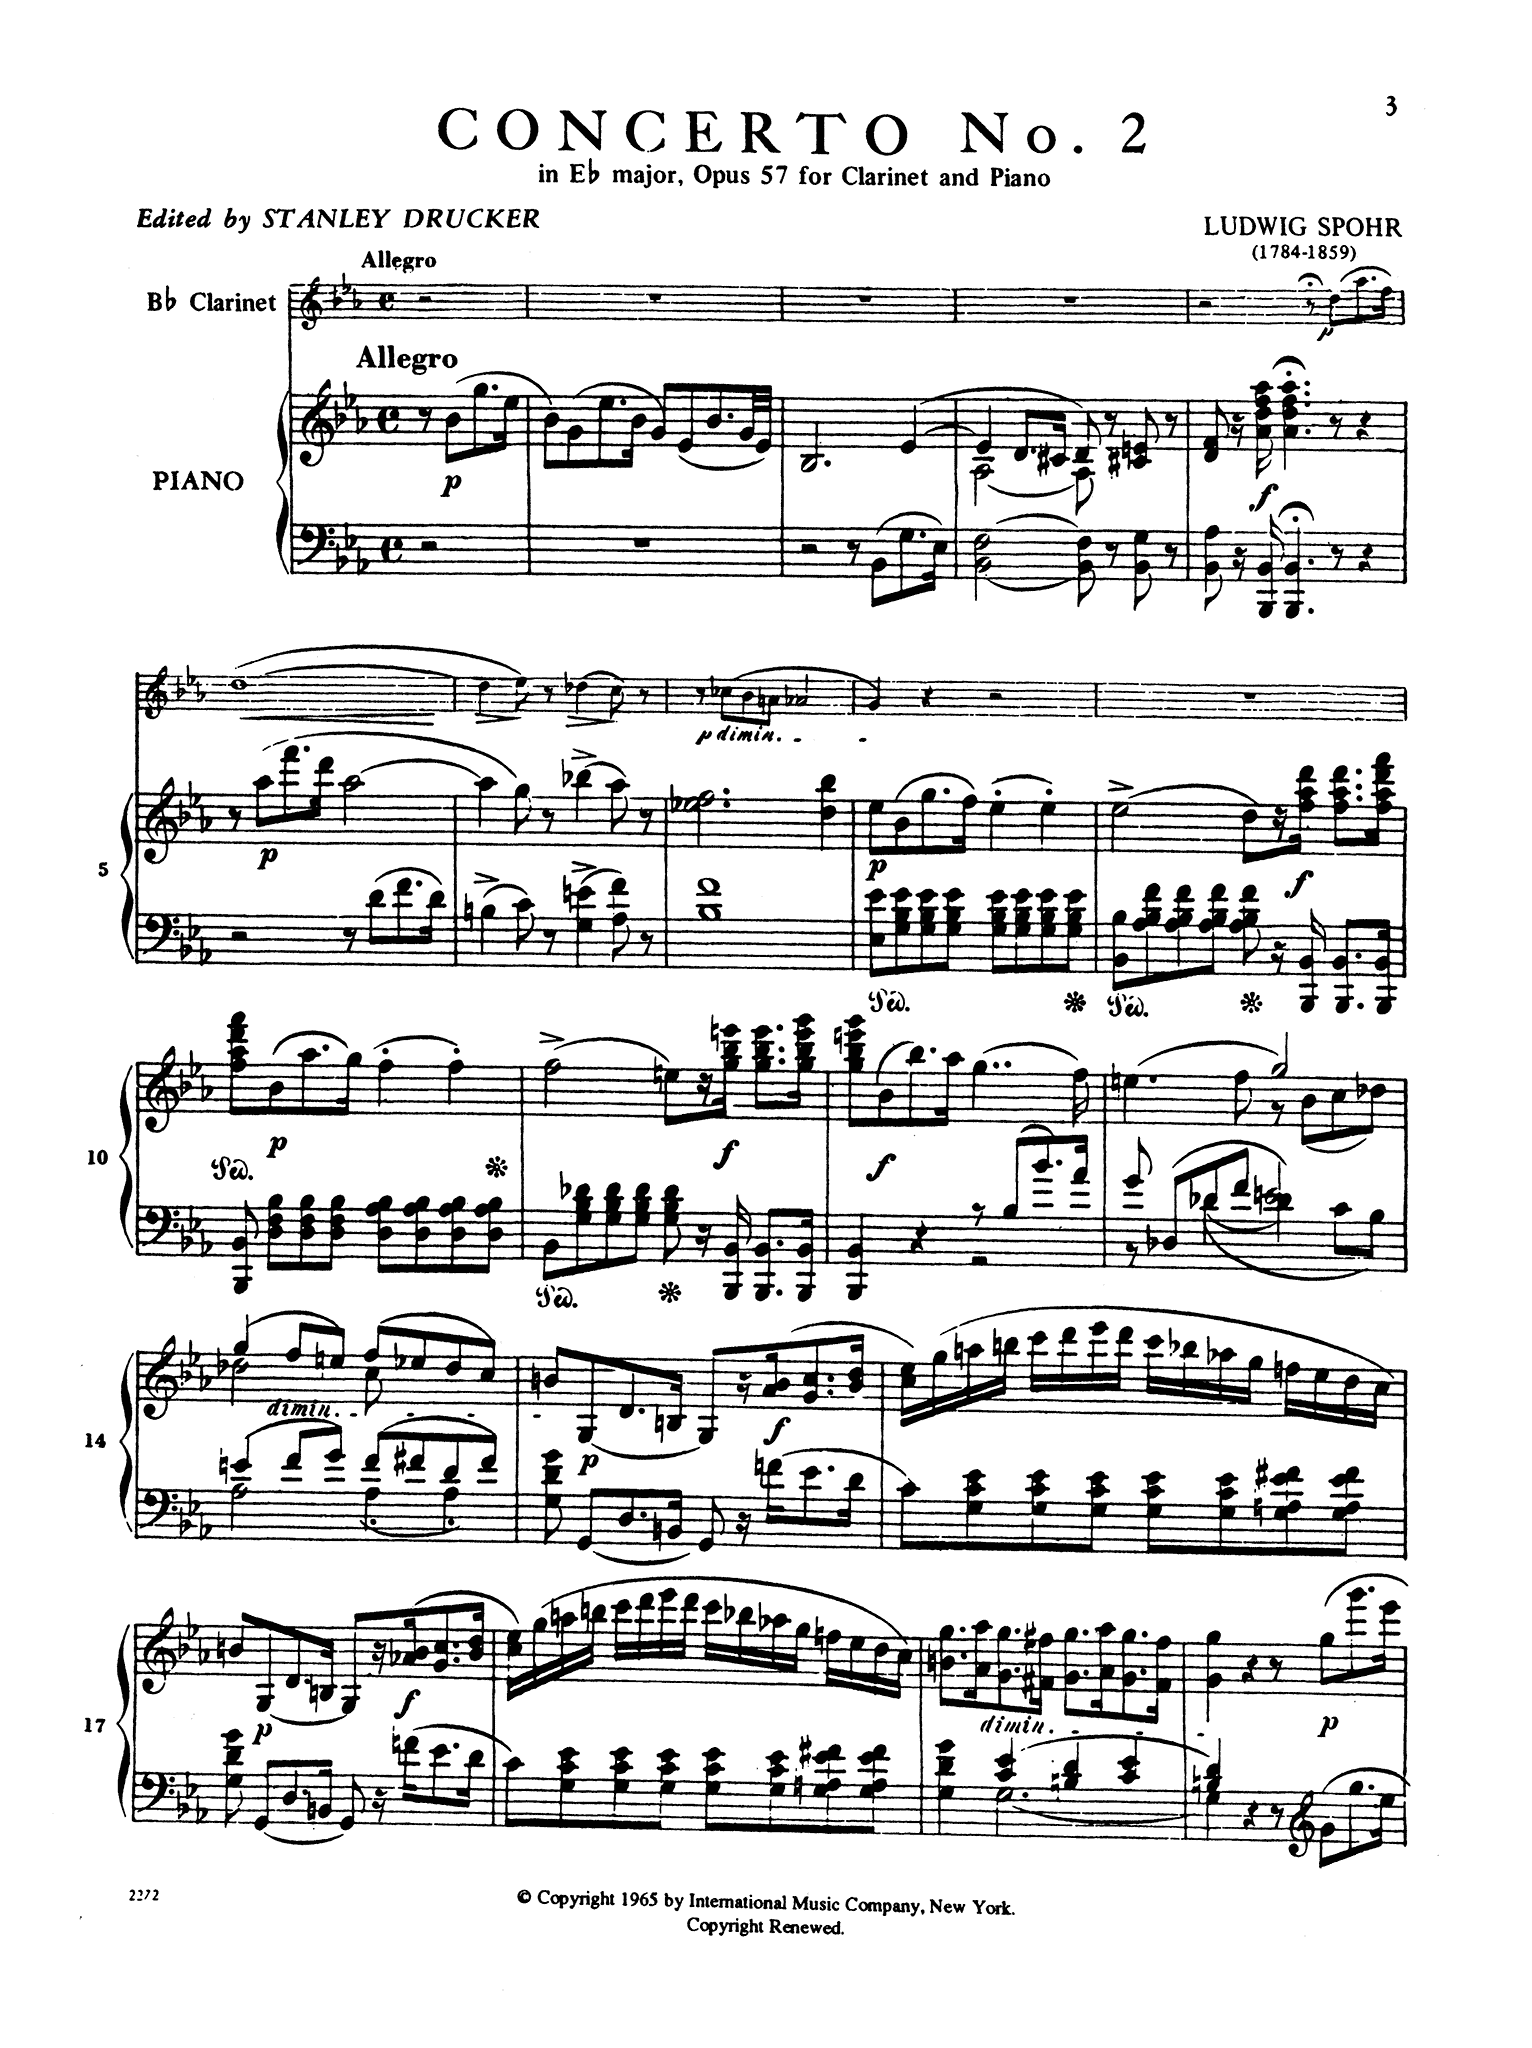 Clarinet Concerto No. 2 in E-flat Major, Op. 57 - Movement 1